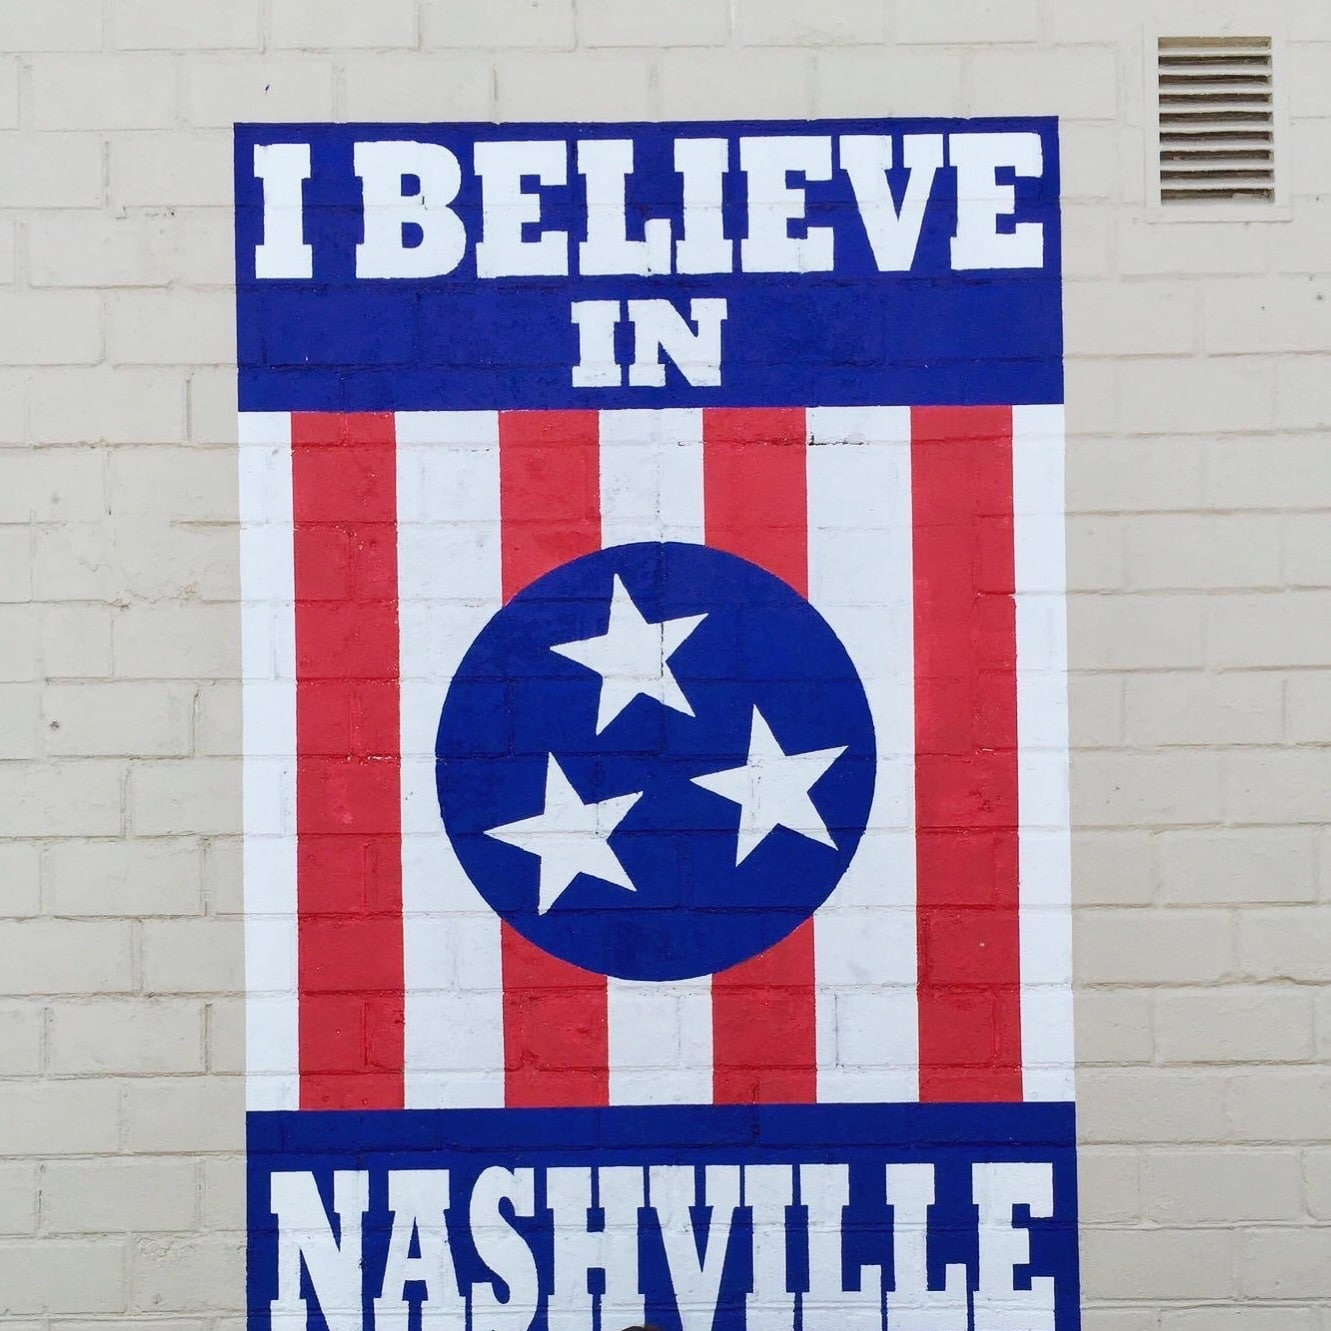 nashville i believe sign